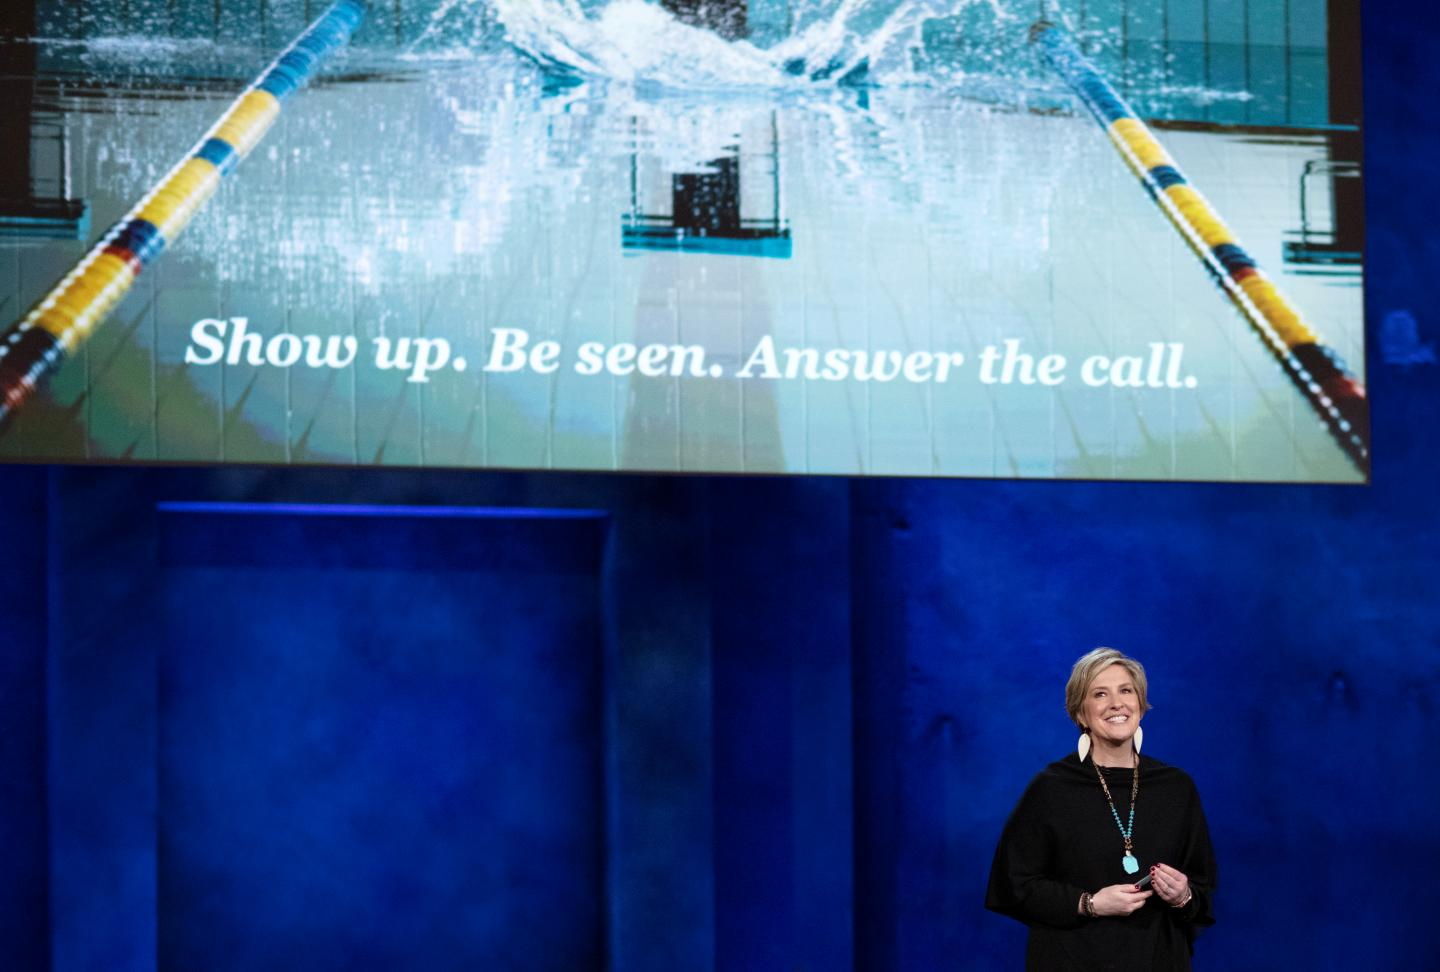 brene-brown-netflix-special-call-courage.jpg